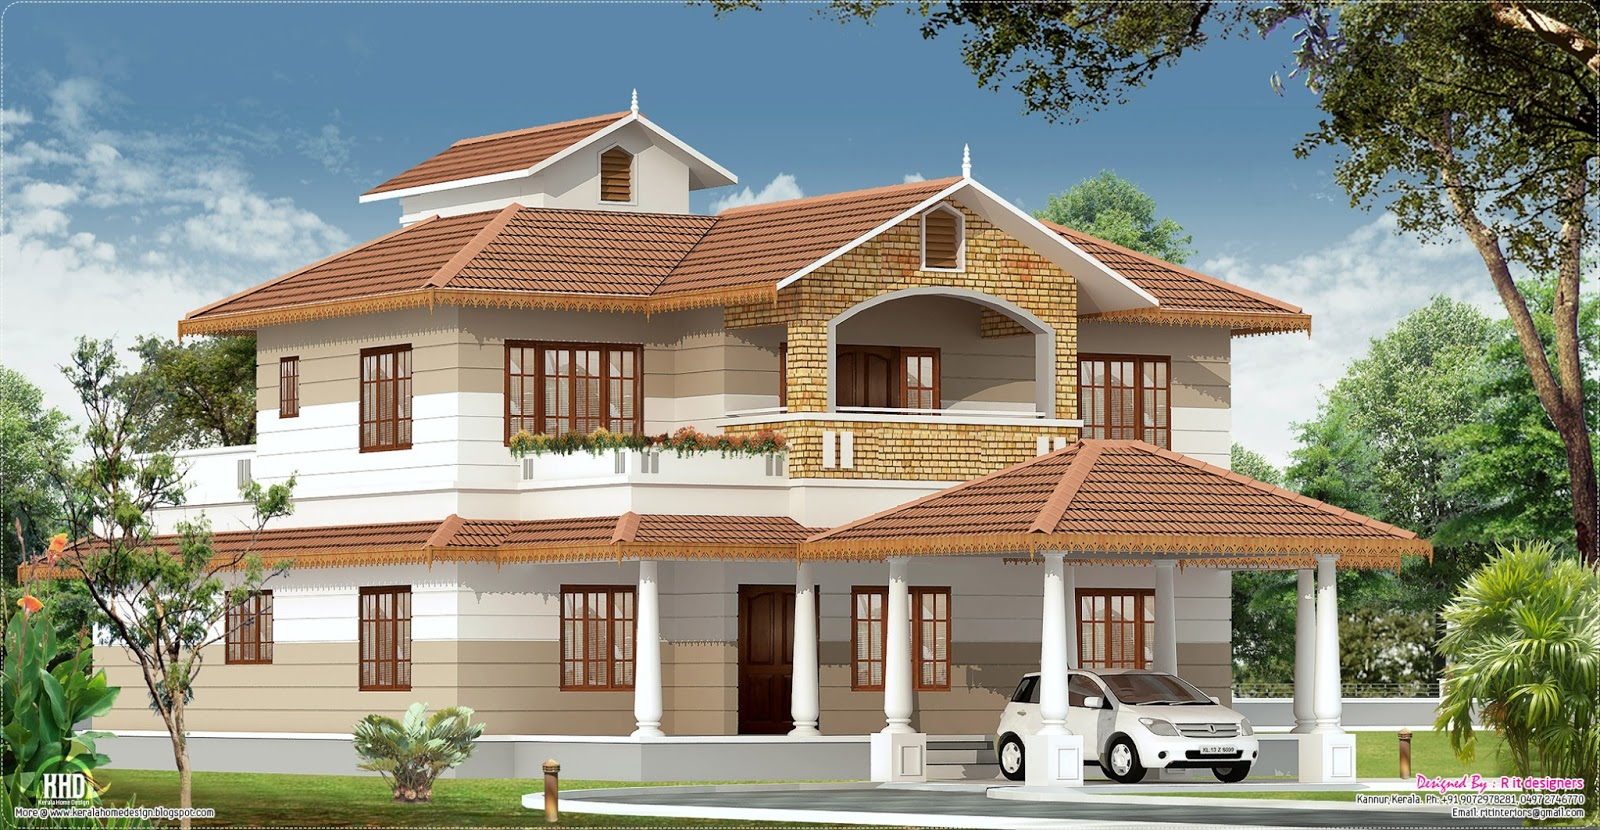 2700 kerala home with interior designs kerala for Home designs in kerala